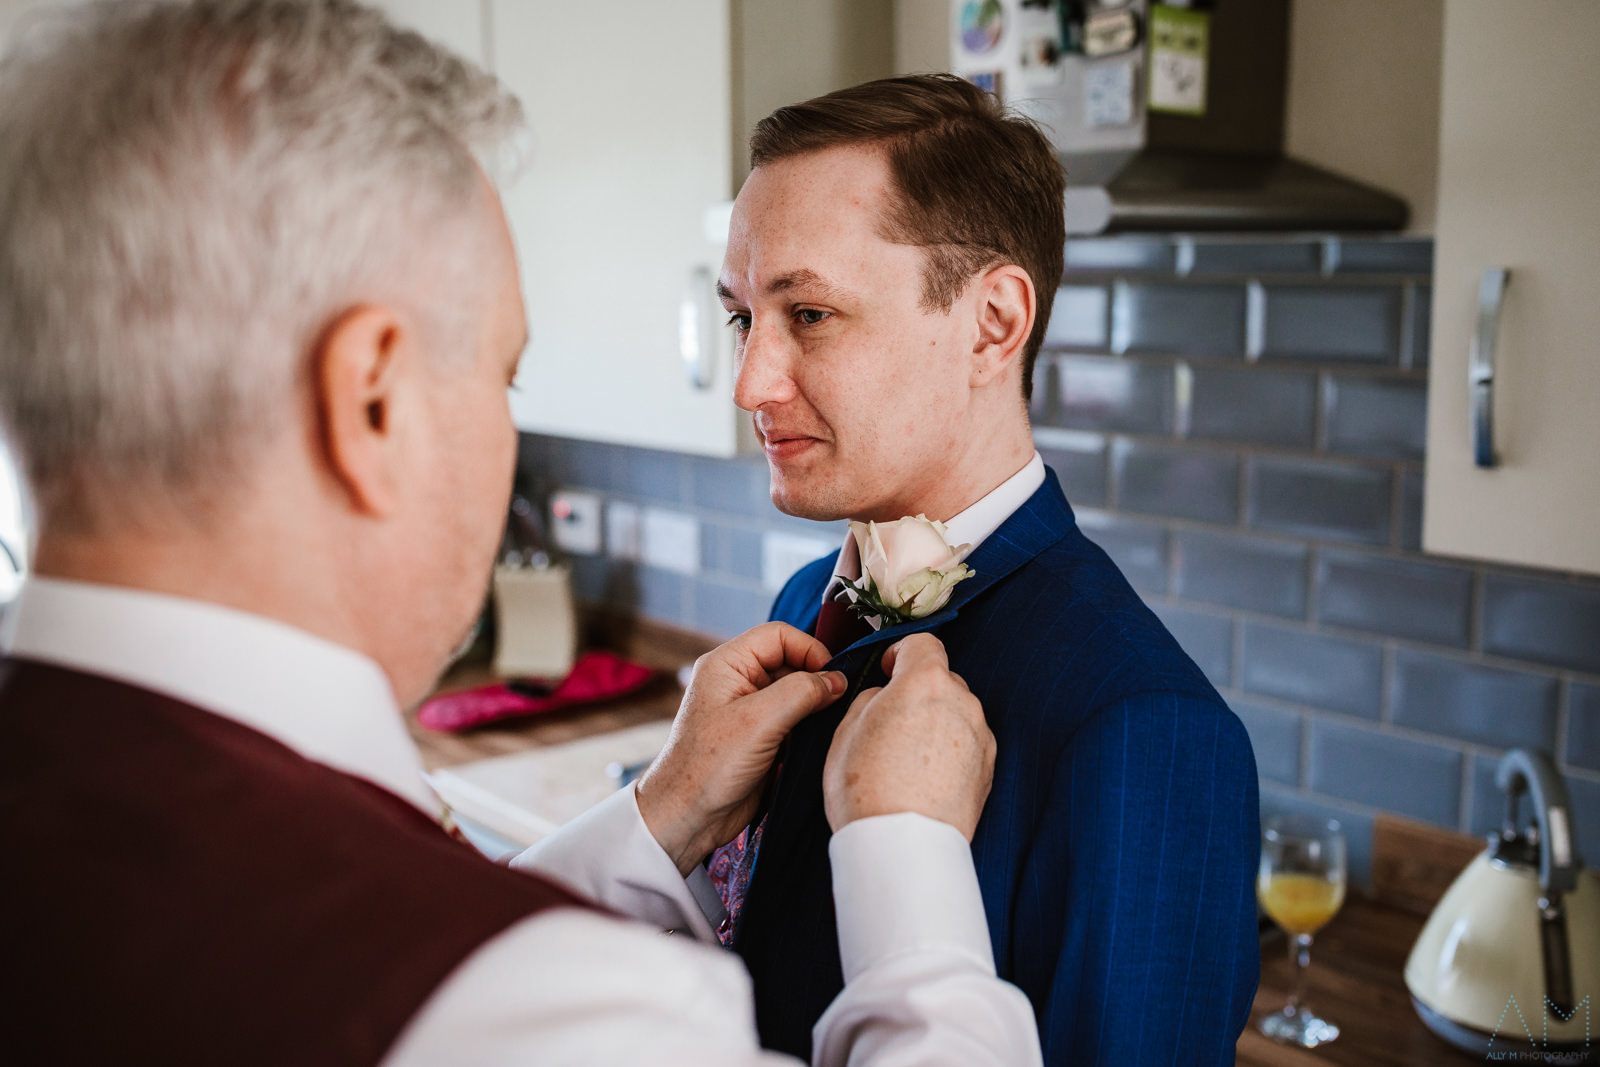 Fastening the buttonhole